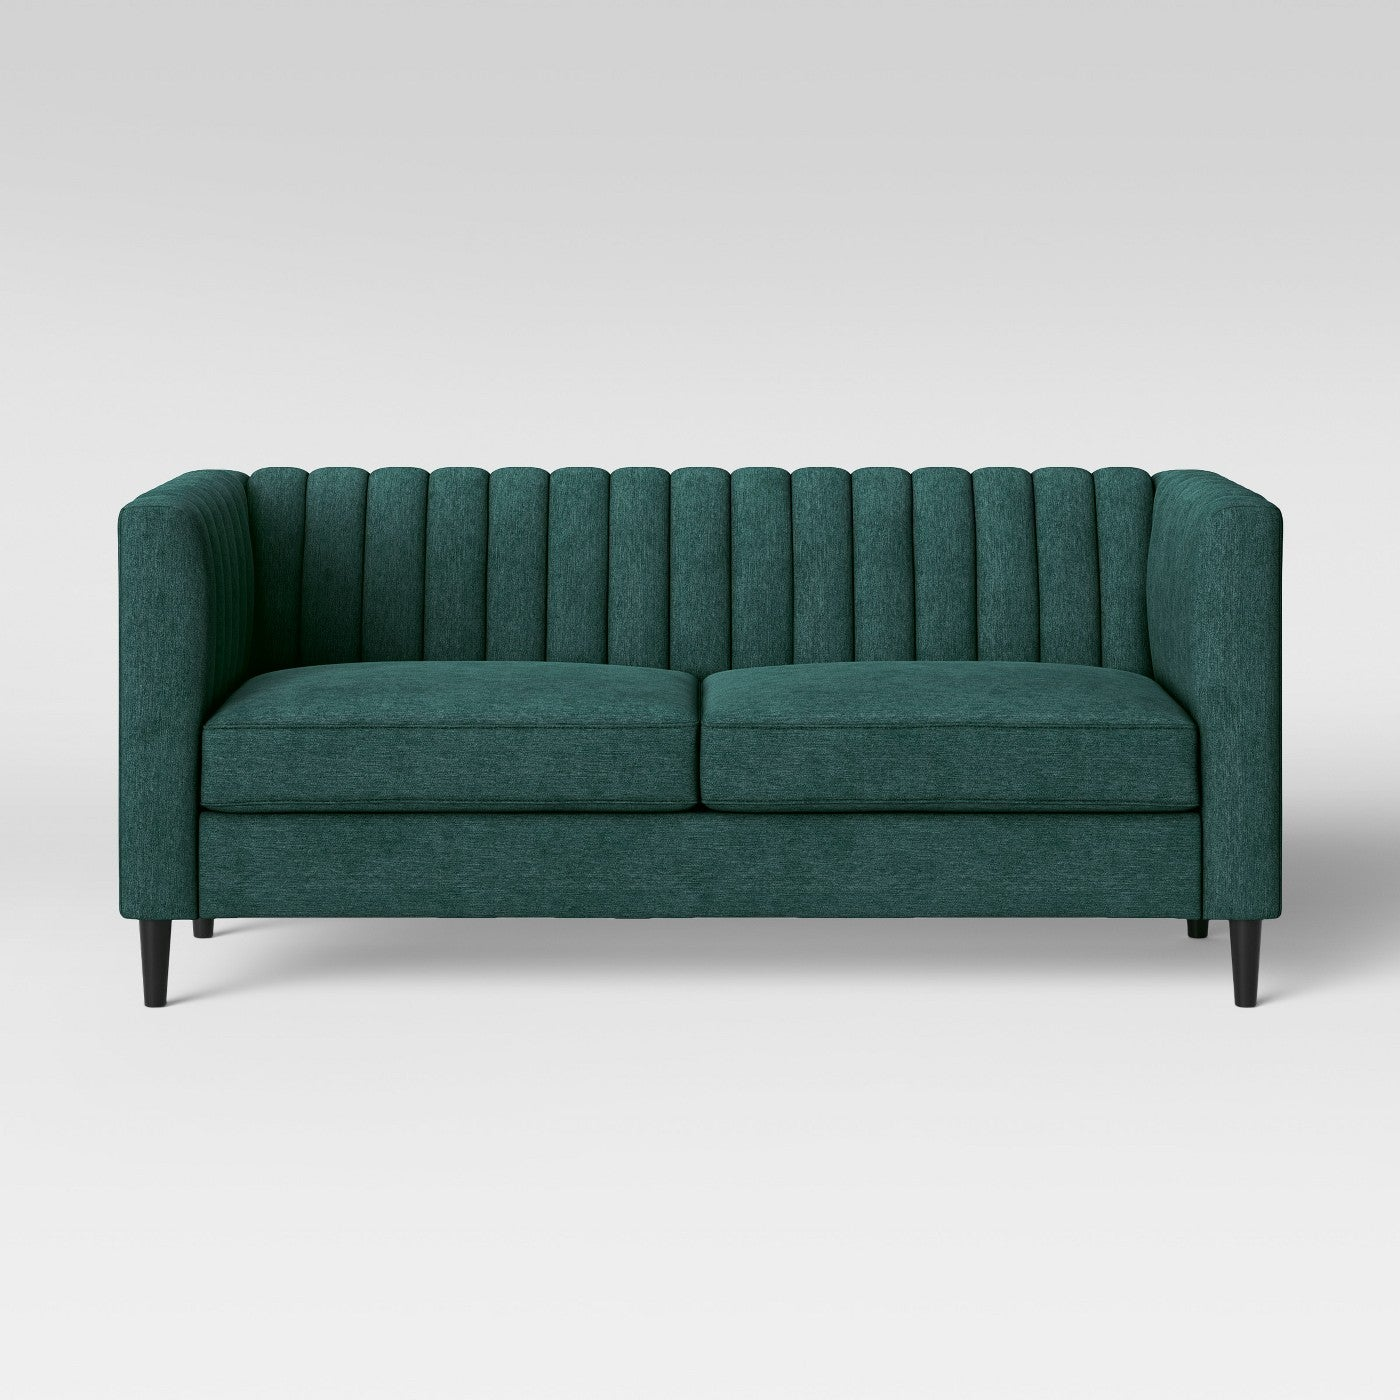 emerald green tufted couch